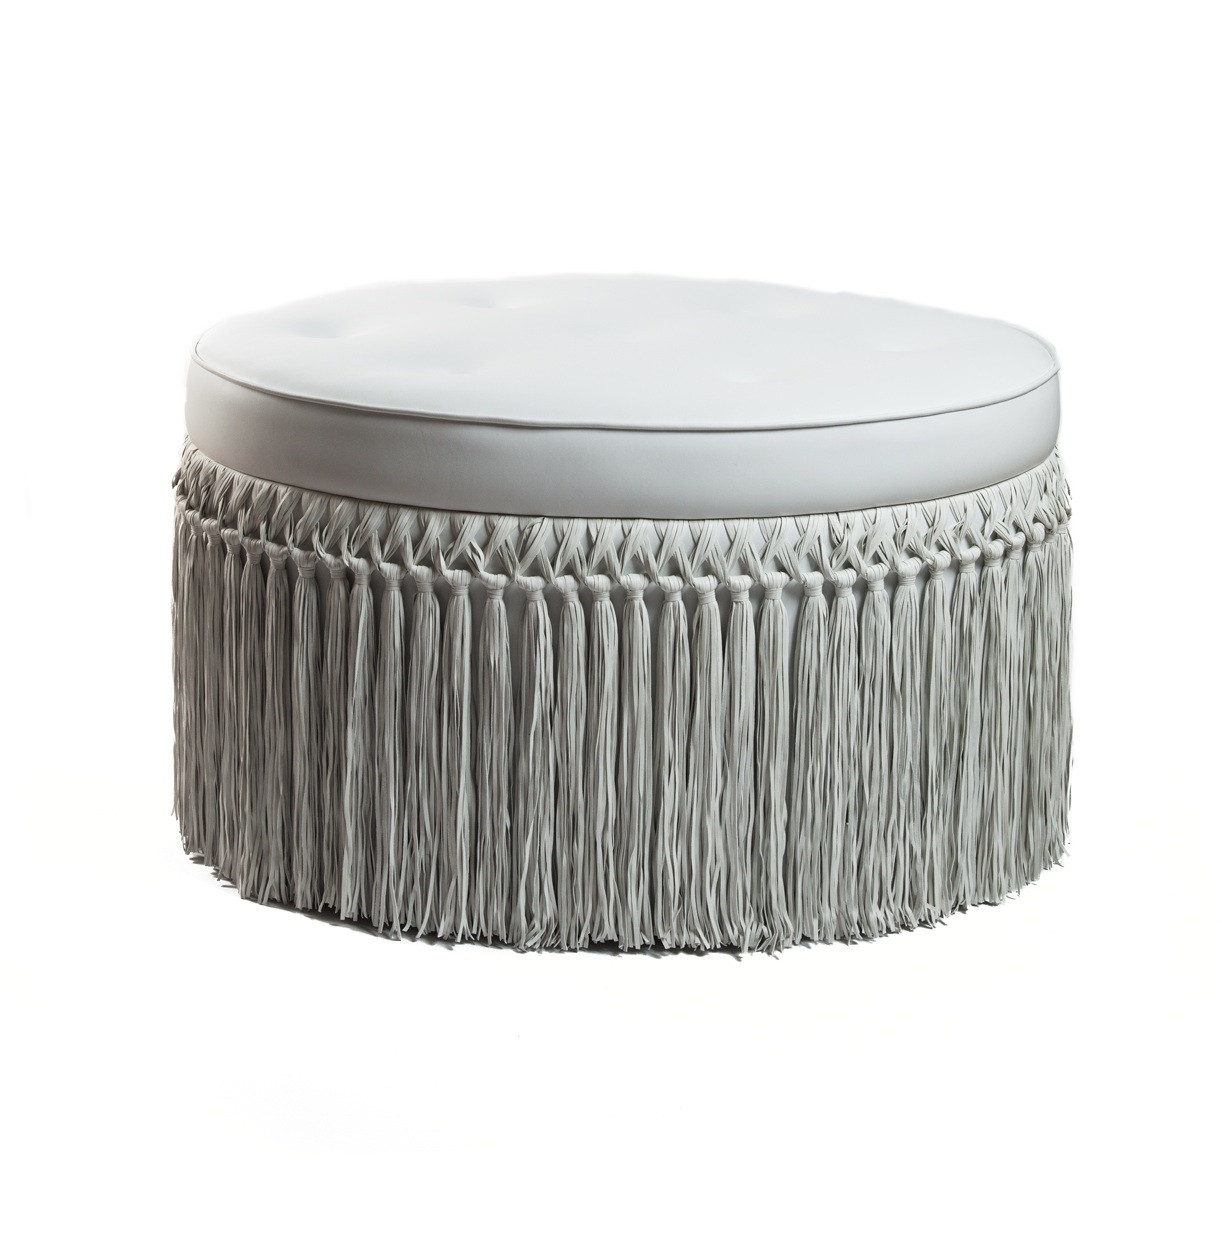 Barbarella Luxe Leather Fringed Ottoman Footstools Footstools Fringing And